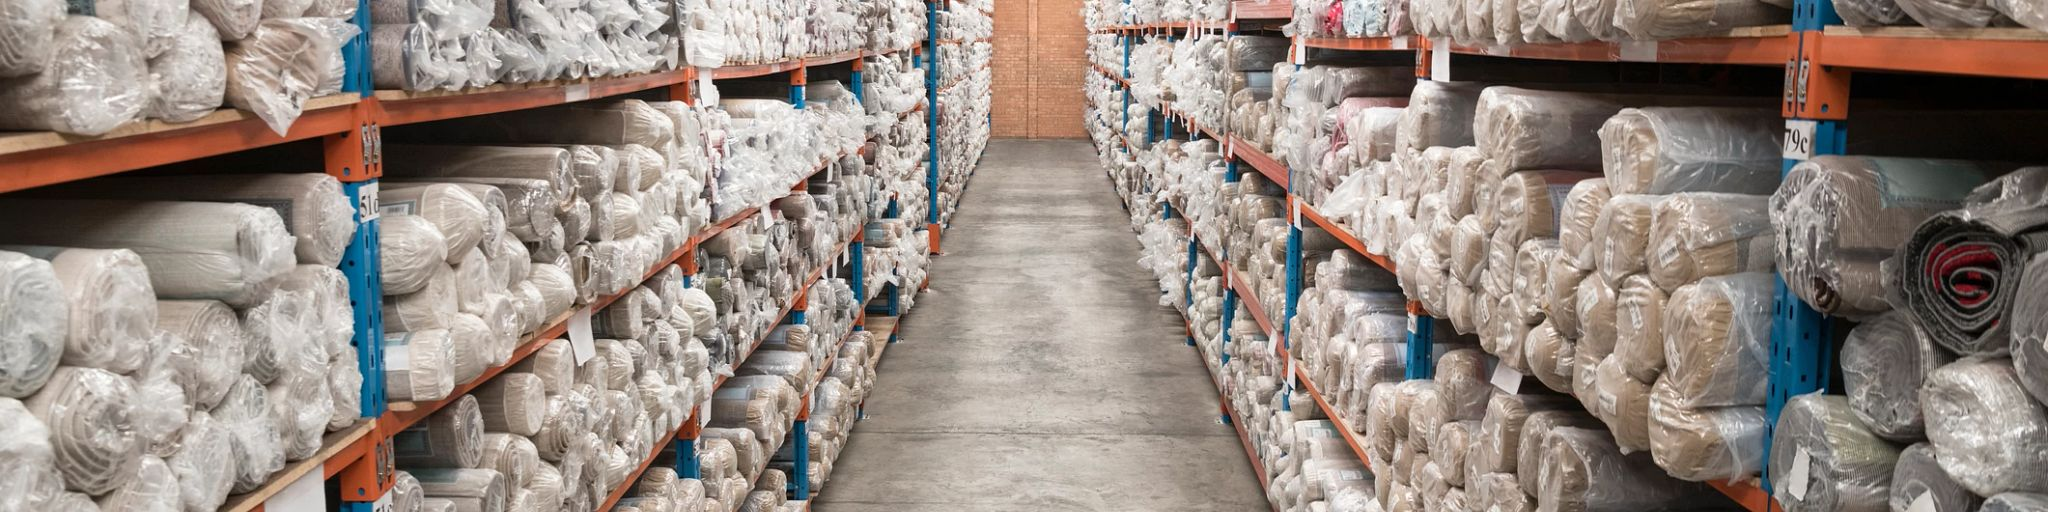 locations-warehouse-in-stock-carpet-rug-rolls